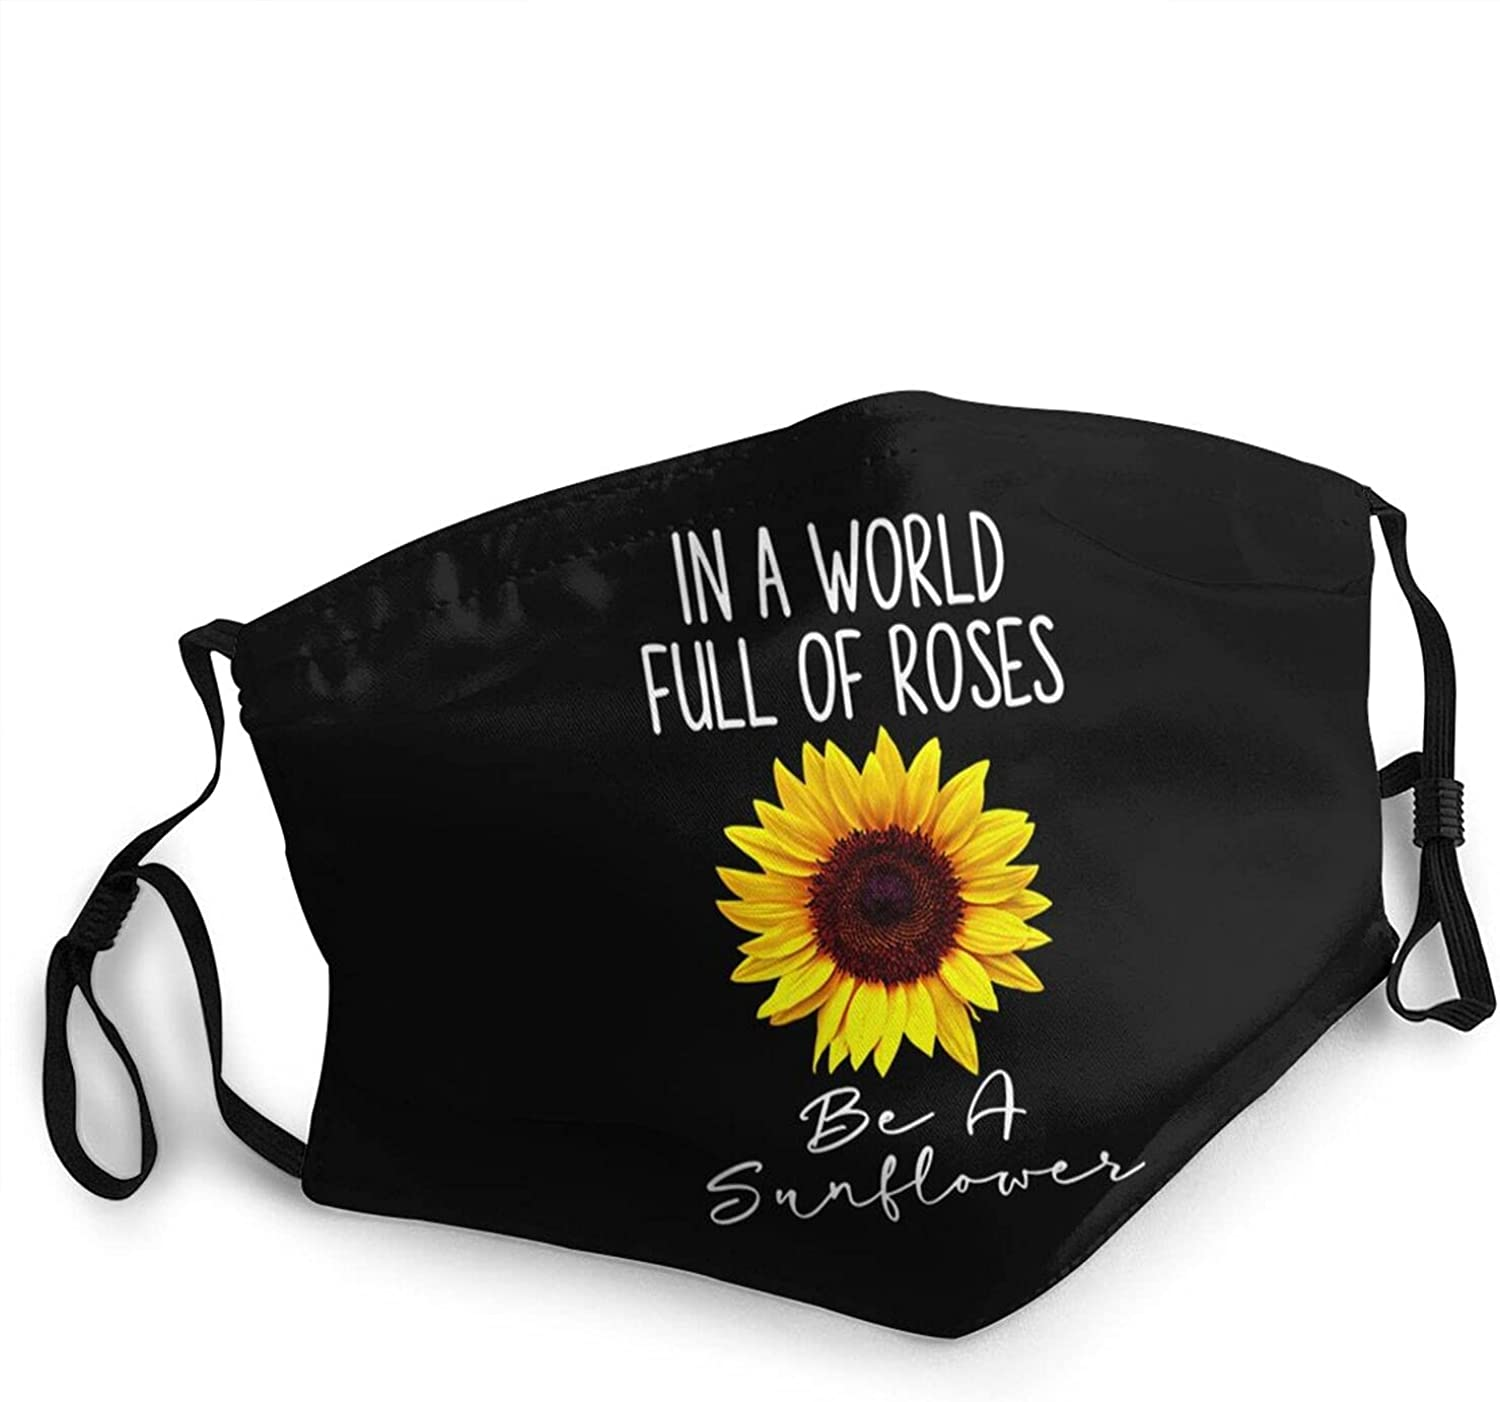 in A World Full of Roses Be A Sunflower Face Mask,Men's Women's Outdoor Reusable and Washable Adjustable Balaclavas